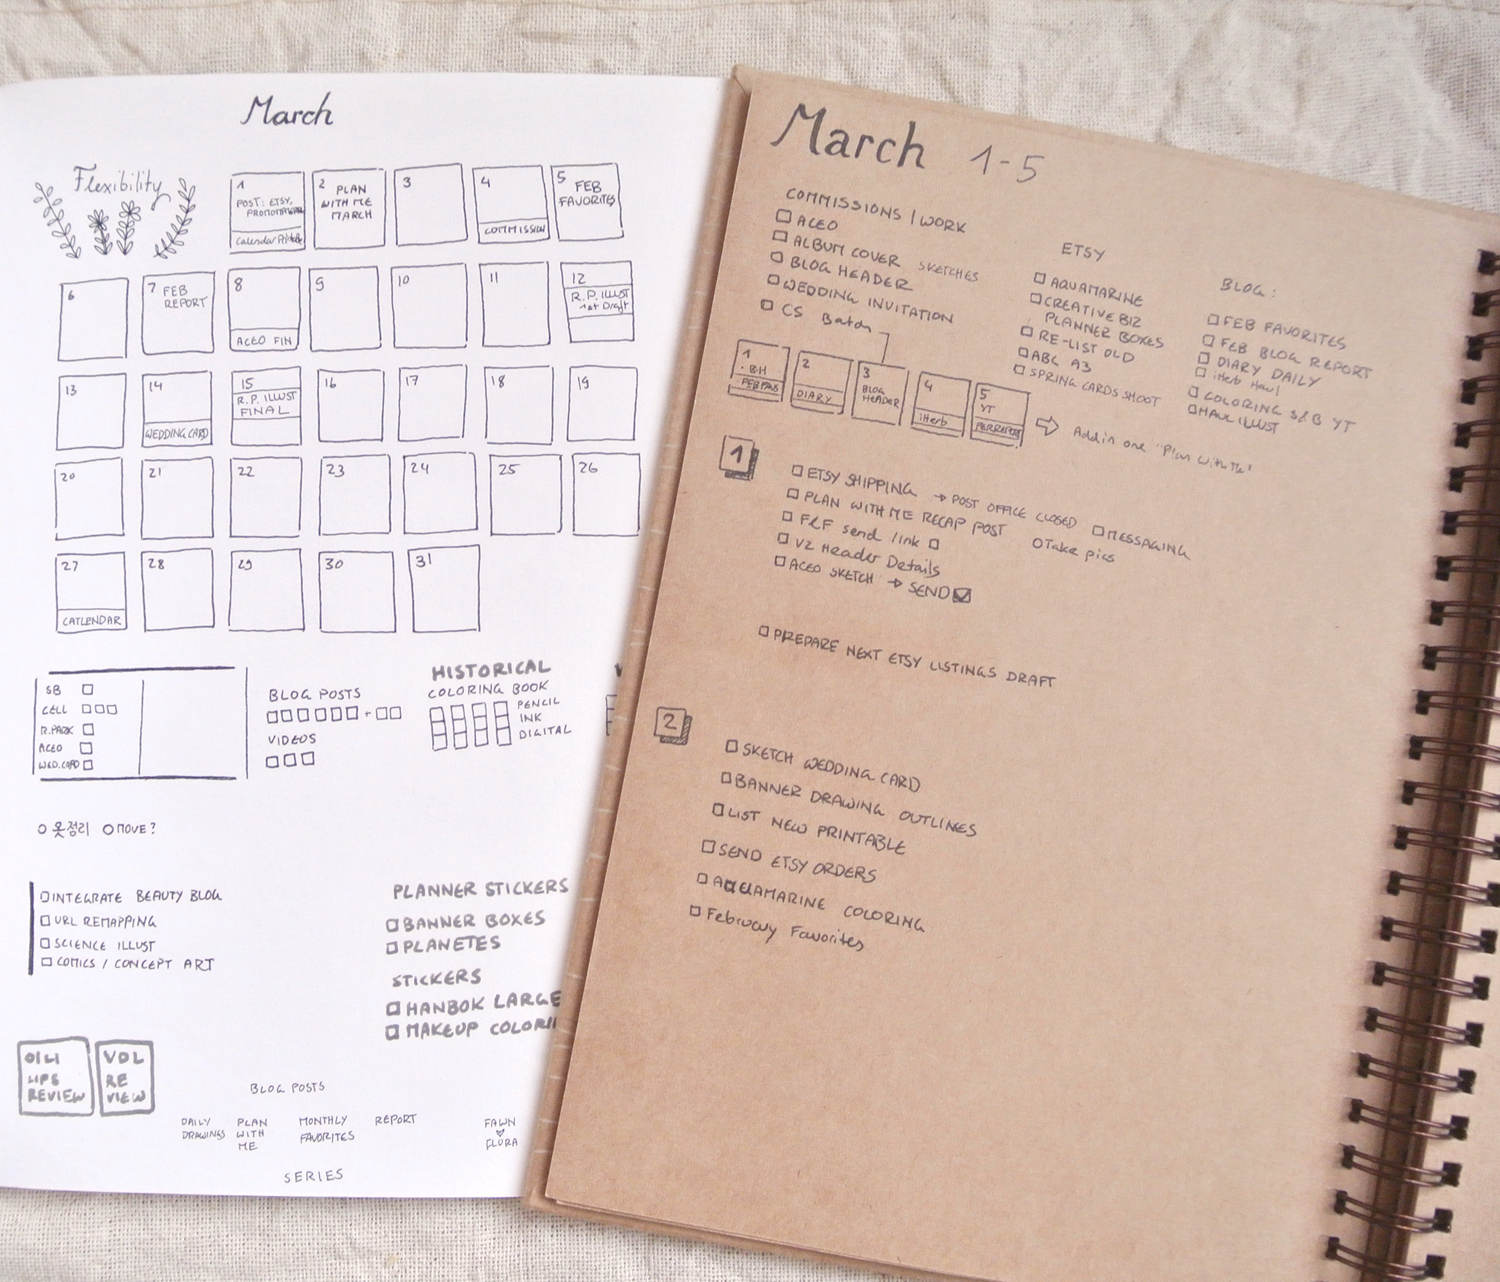 Bullet Journal spreads for March - monthly and weekly/daily overview. I like to keep it tiny and simple, and since I hate going back and forth between pages, I'm using two seperate journals.